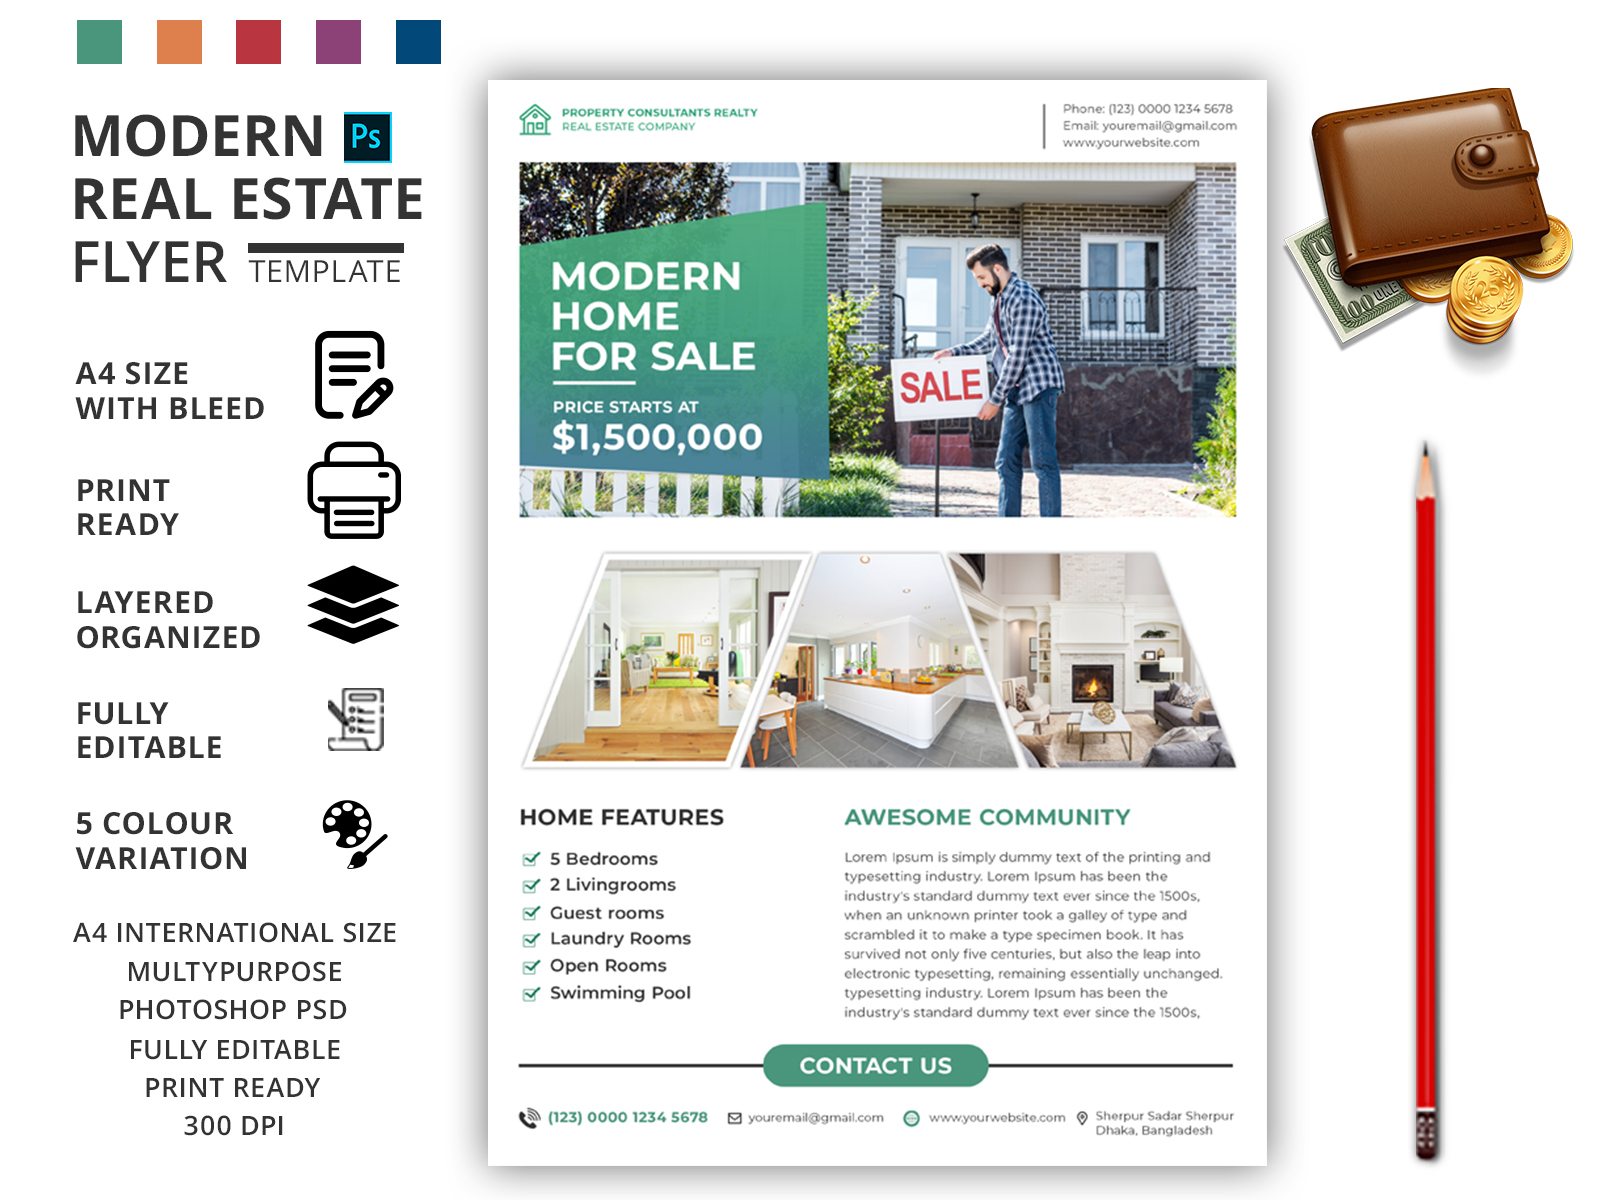 Modern Real Estate Flyer Template By Md Zahid Hasan On Dribbble